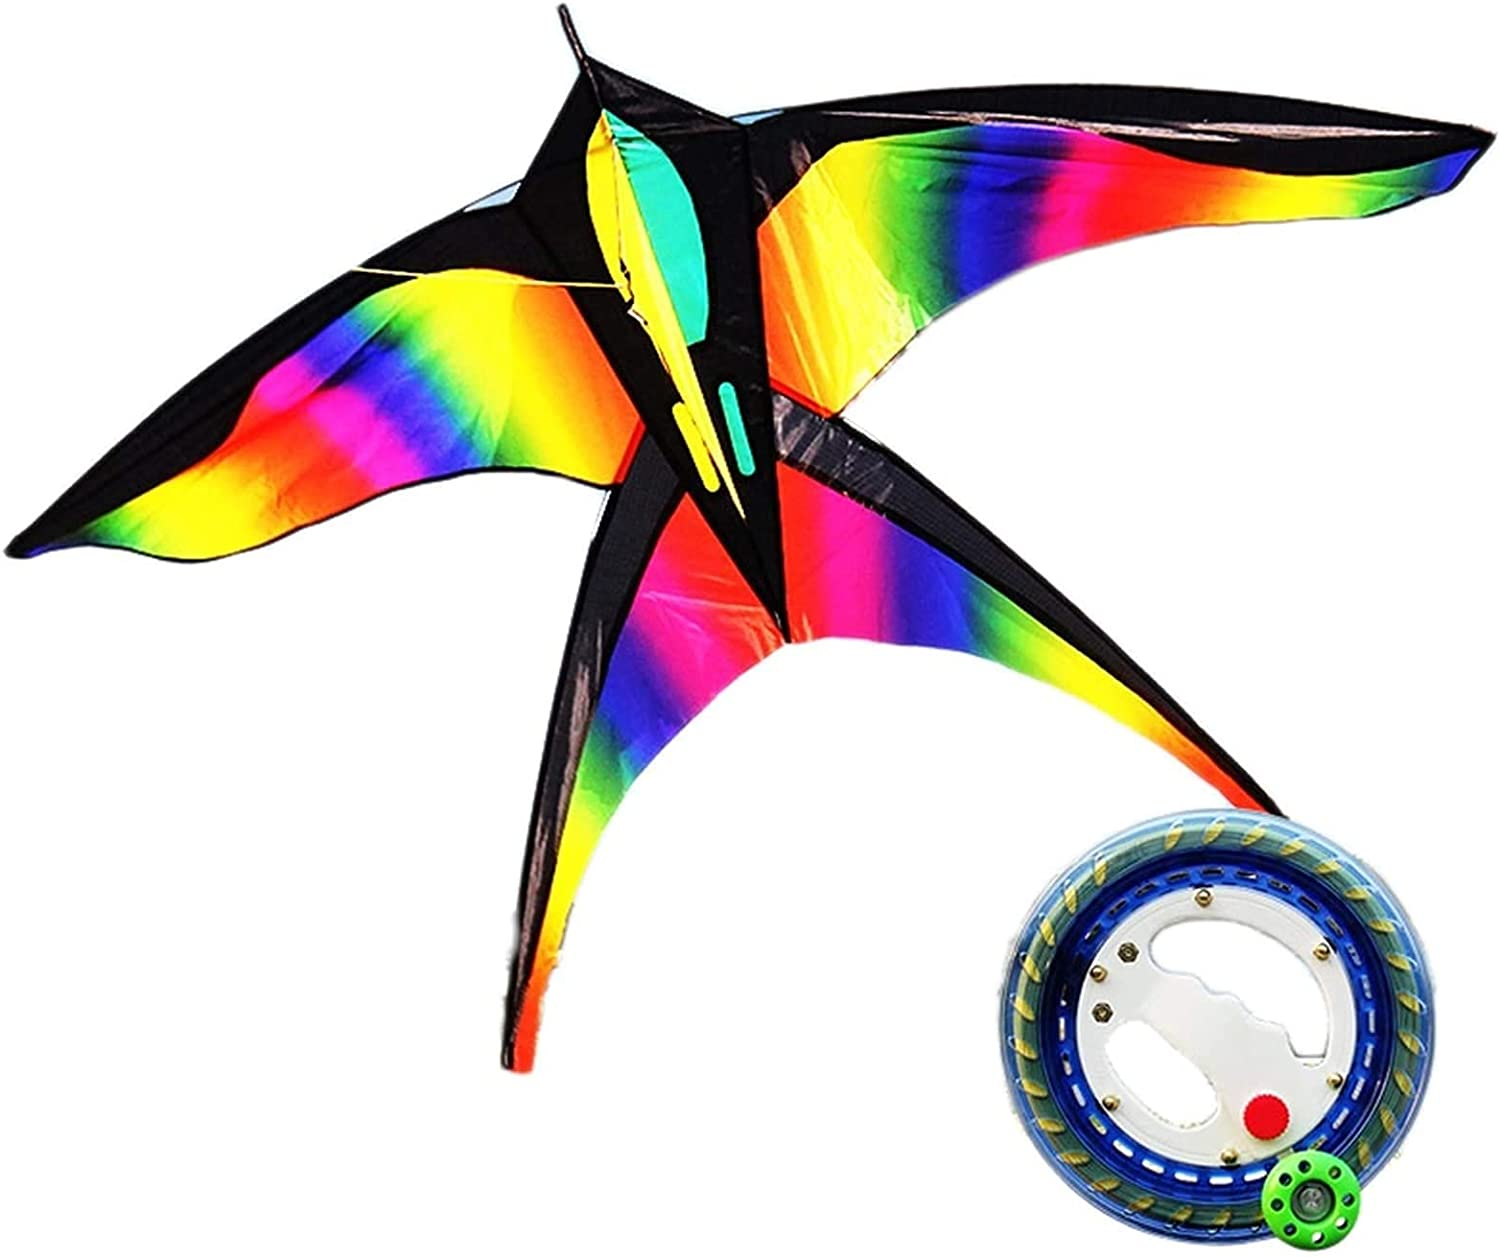 LIOYUHGTFY Kids Kite Outdoor Rainbo for Games Shipping included Fly We OFFer at cheap prices